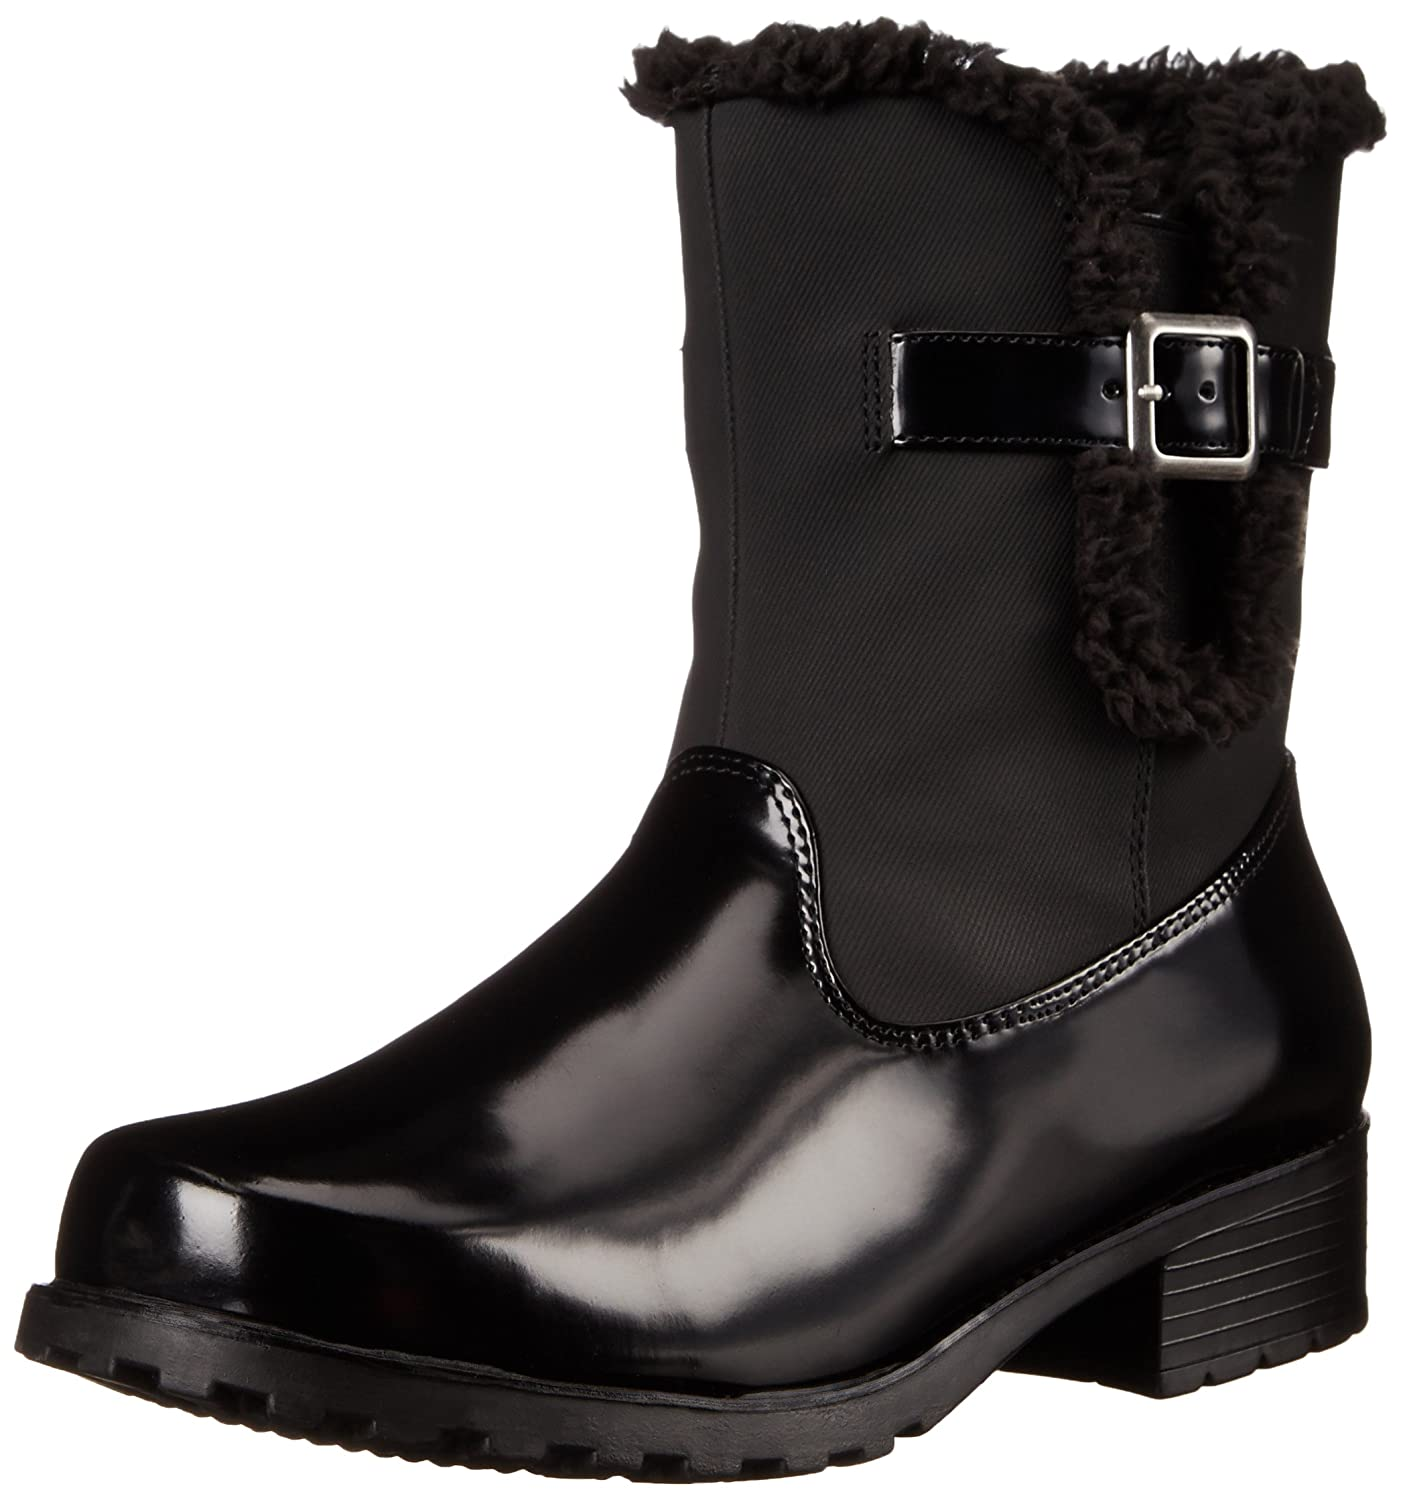 Trotters Women's Blast III Boot B00RZPEEIW 11 W US|Black Box